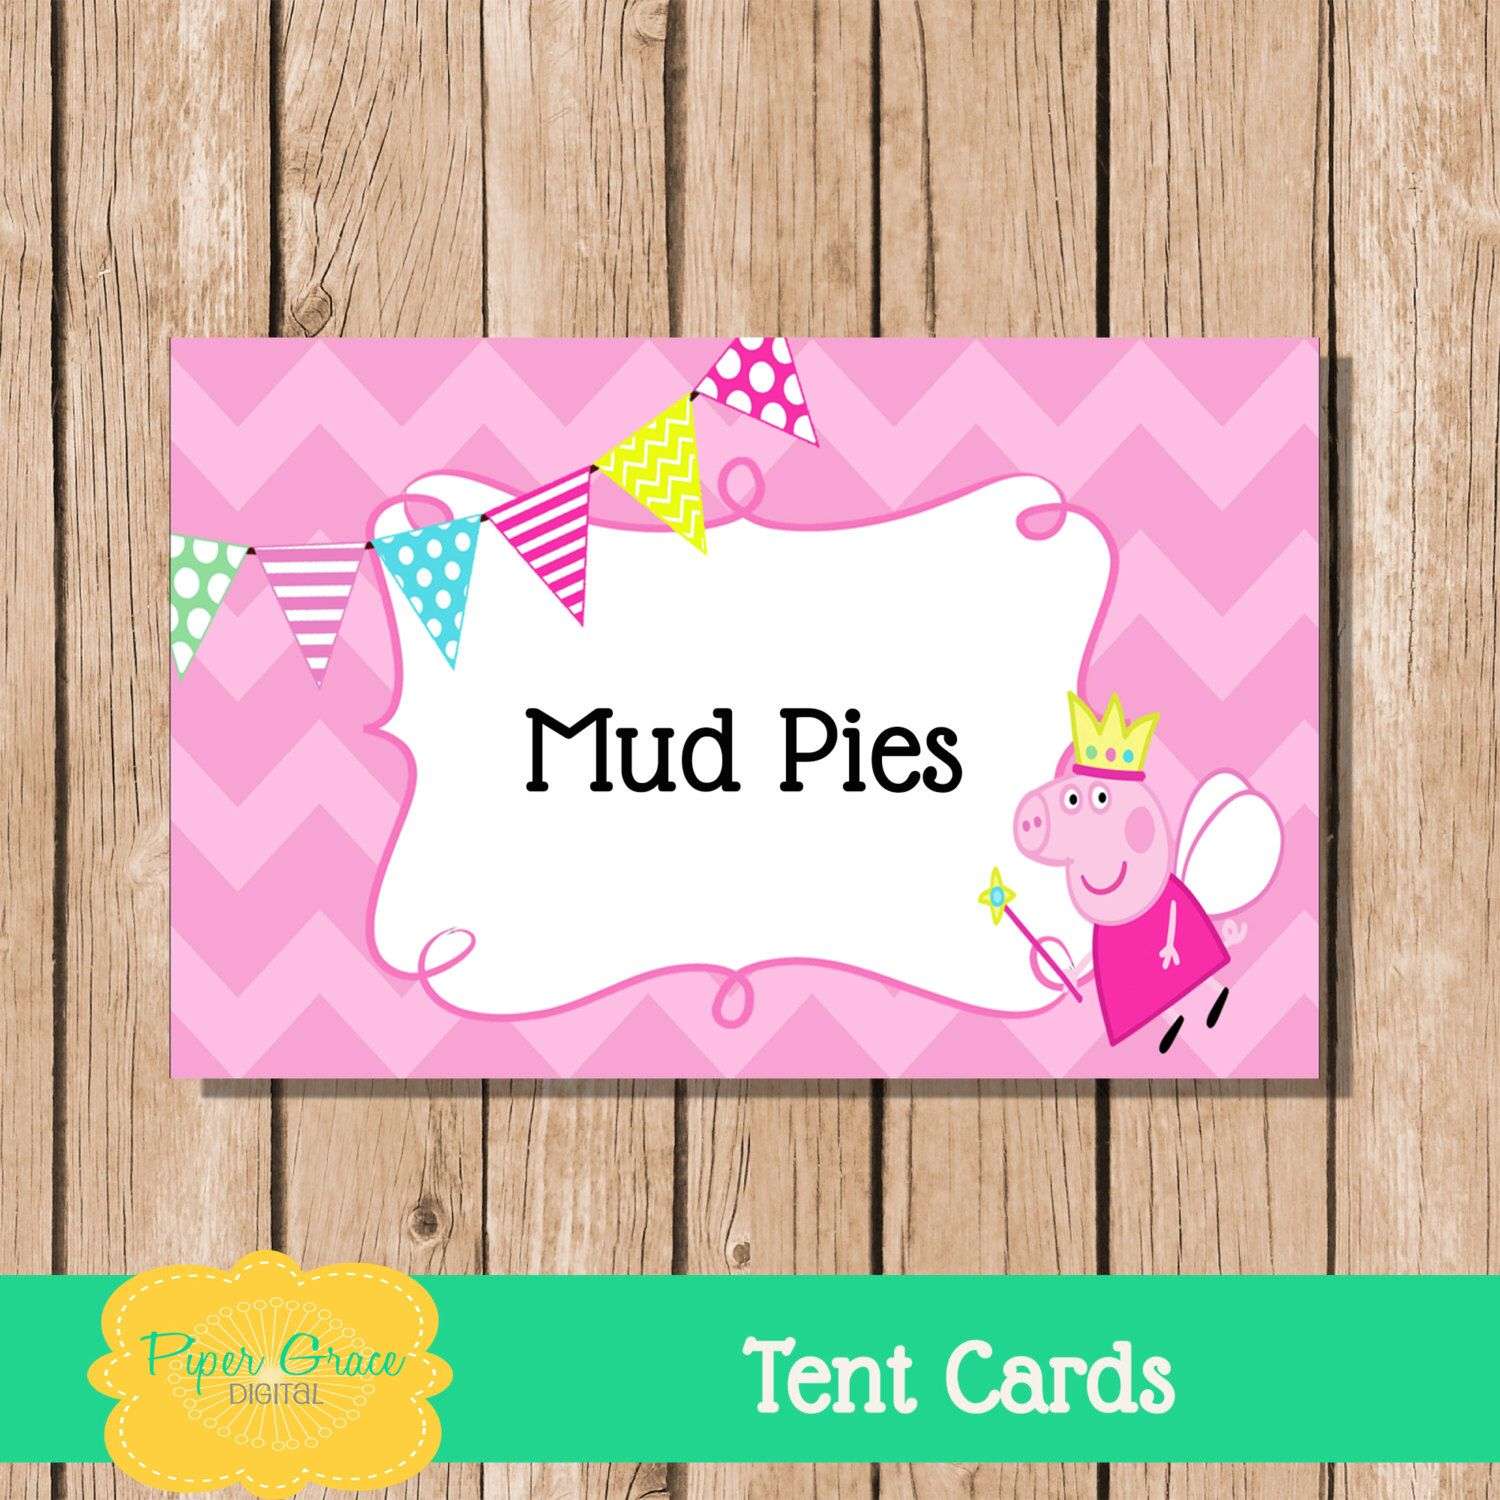 Cuisine Peppa Pig Peppa Pig Food Tent Cards Peppa Pig Fairy Tent Cards